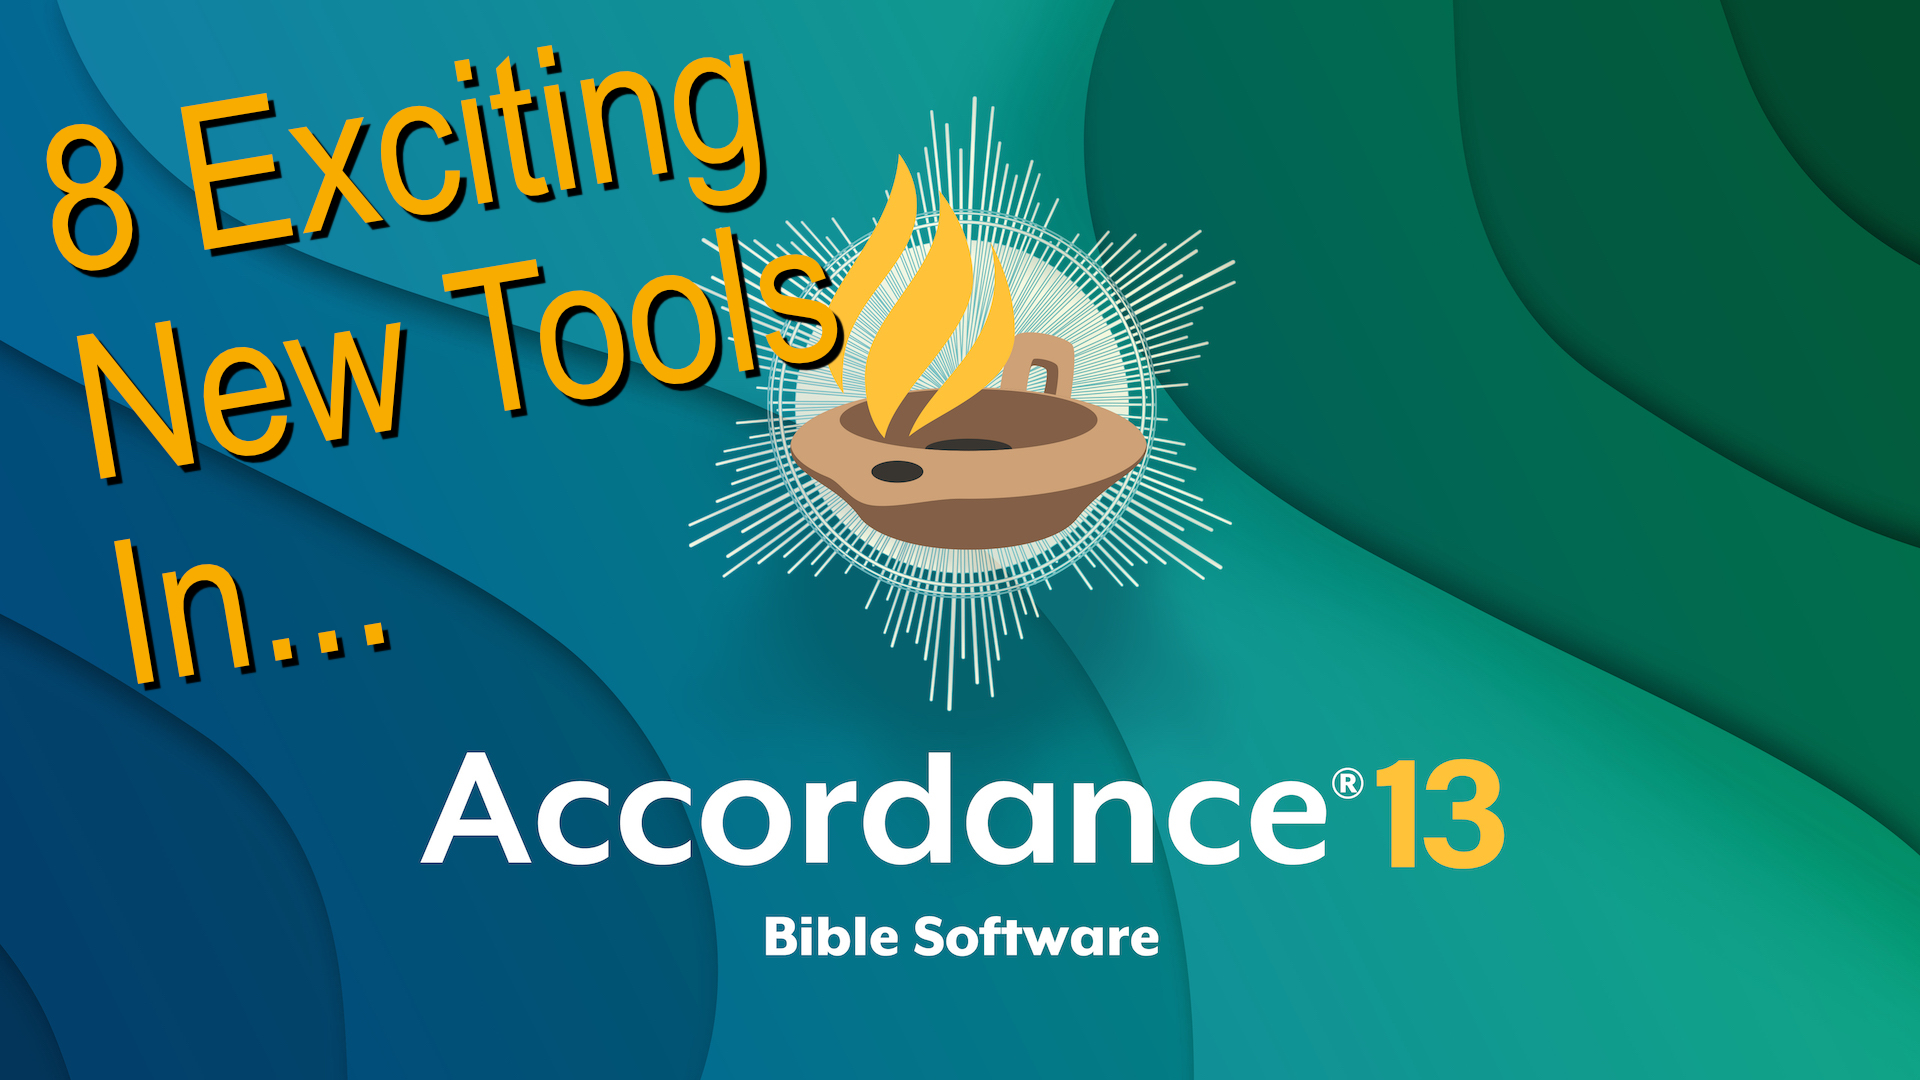 8 exciting new tools in accordance 13